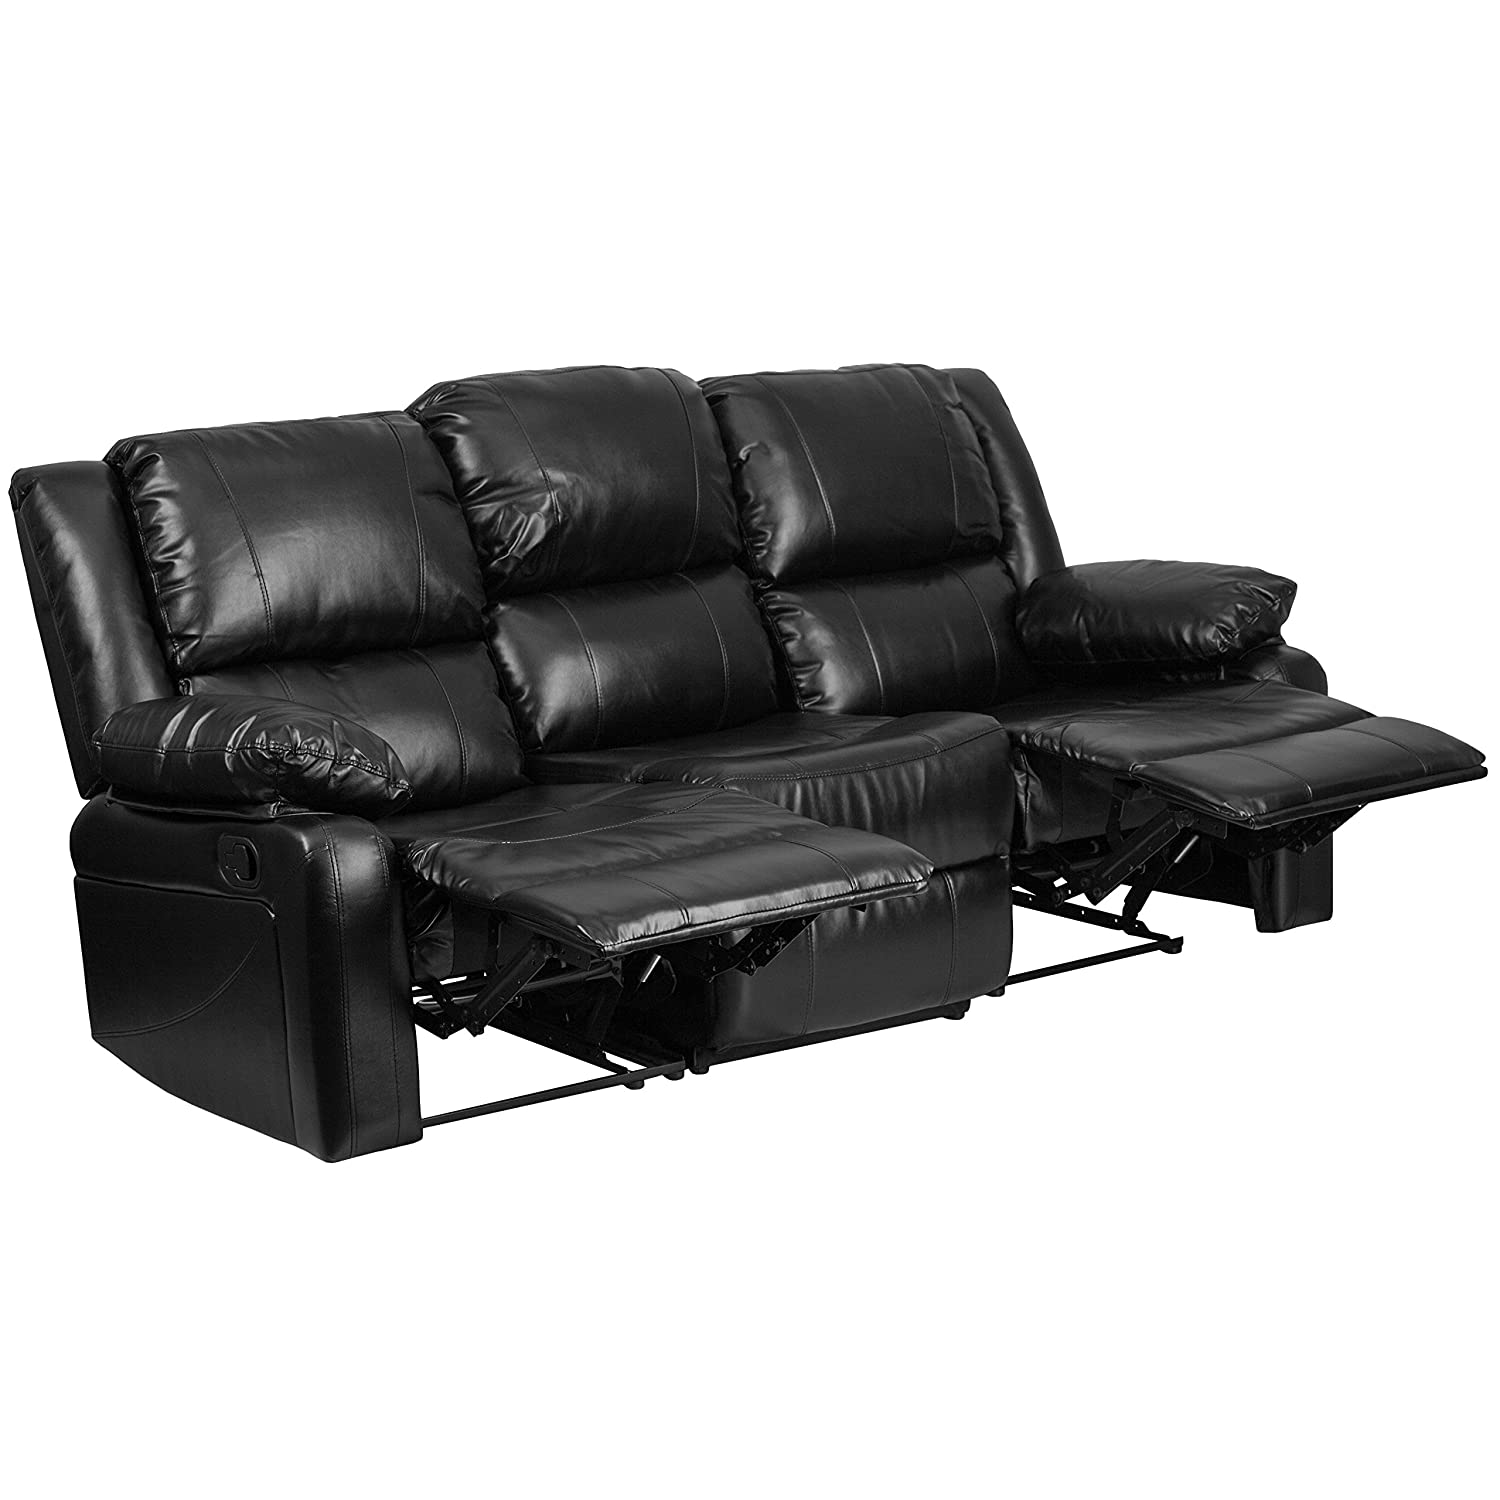 Amazon com flash furniture harmony series black leather sofa with two built in recliners kitchen dining